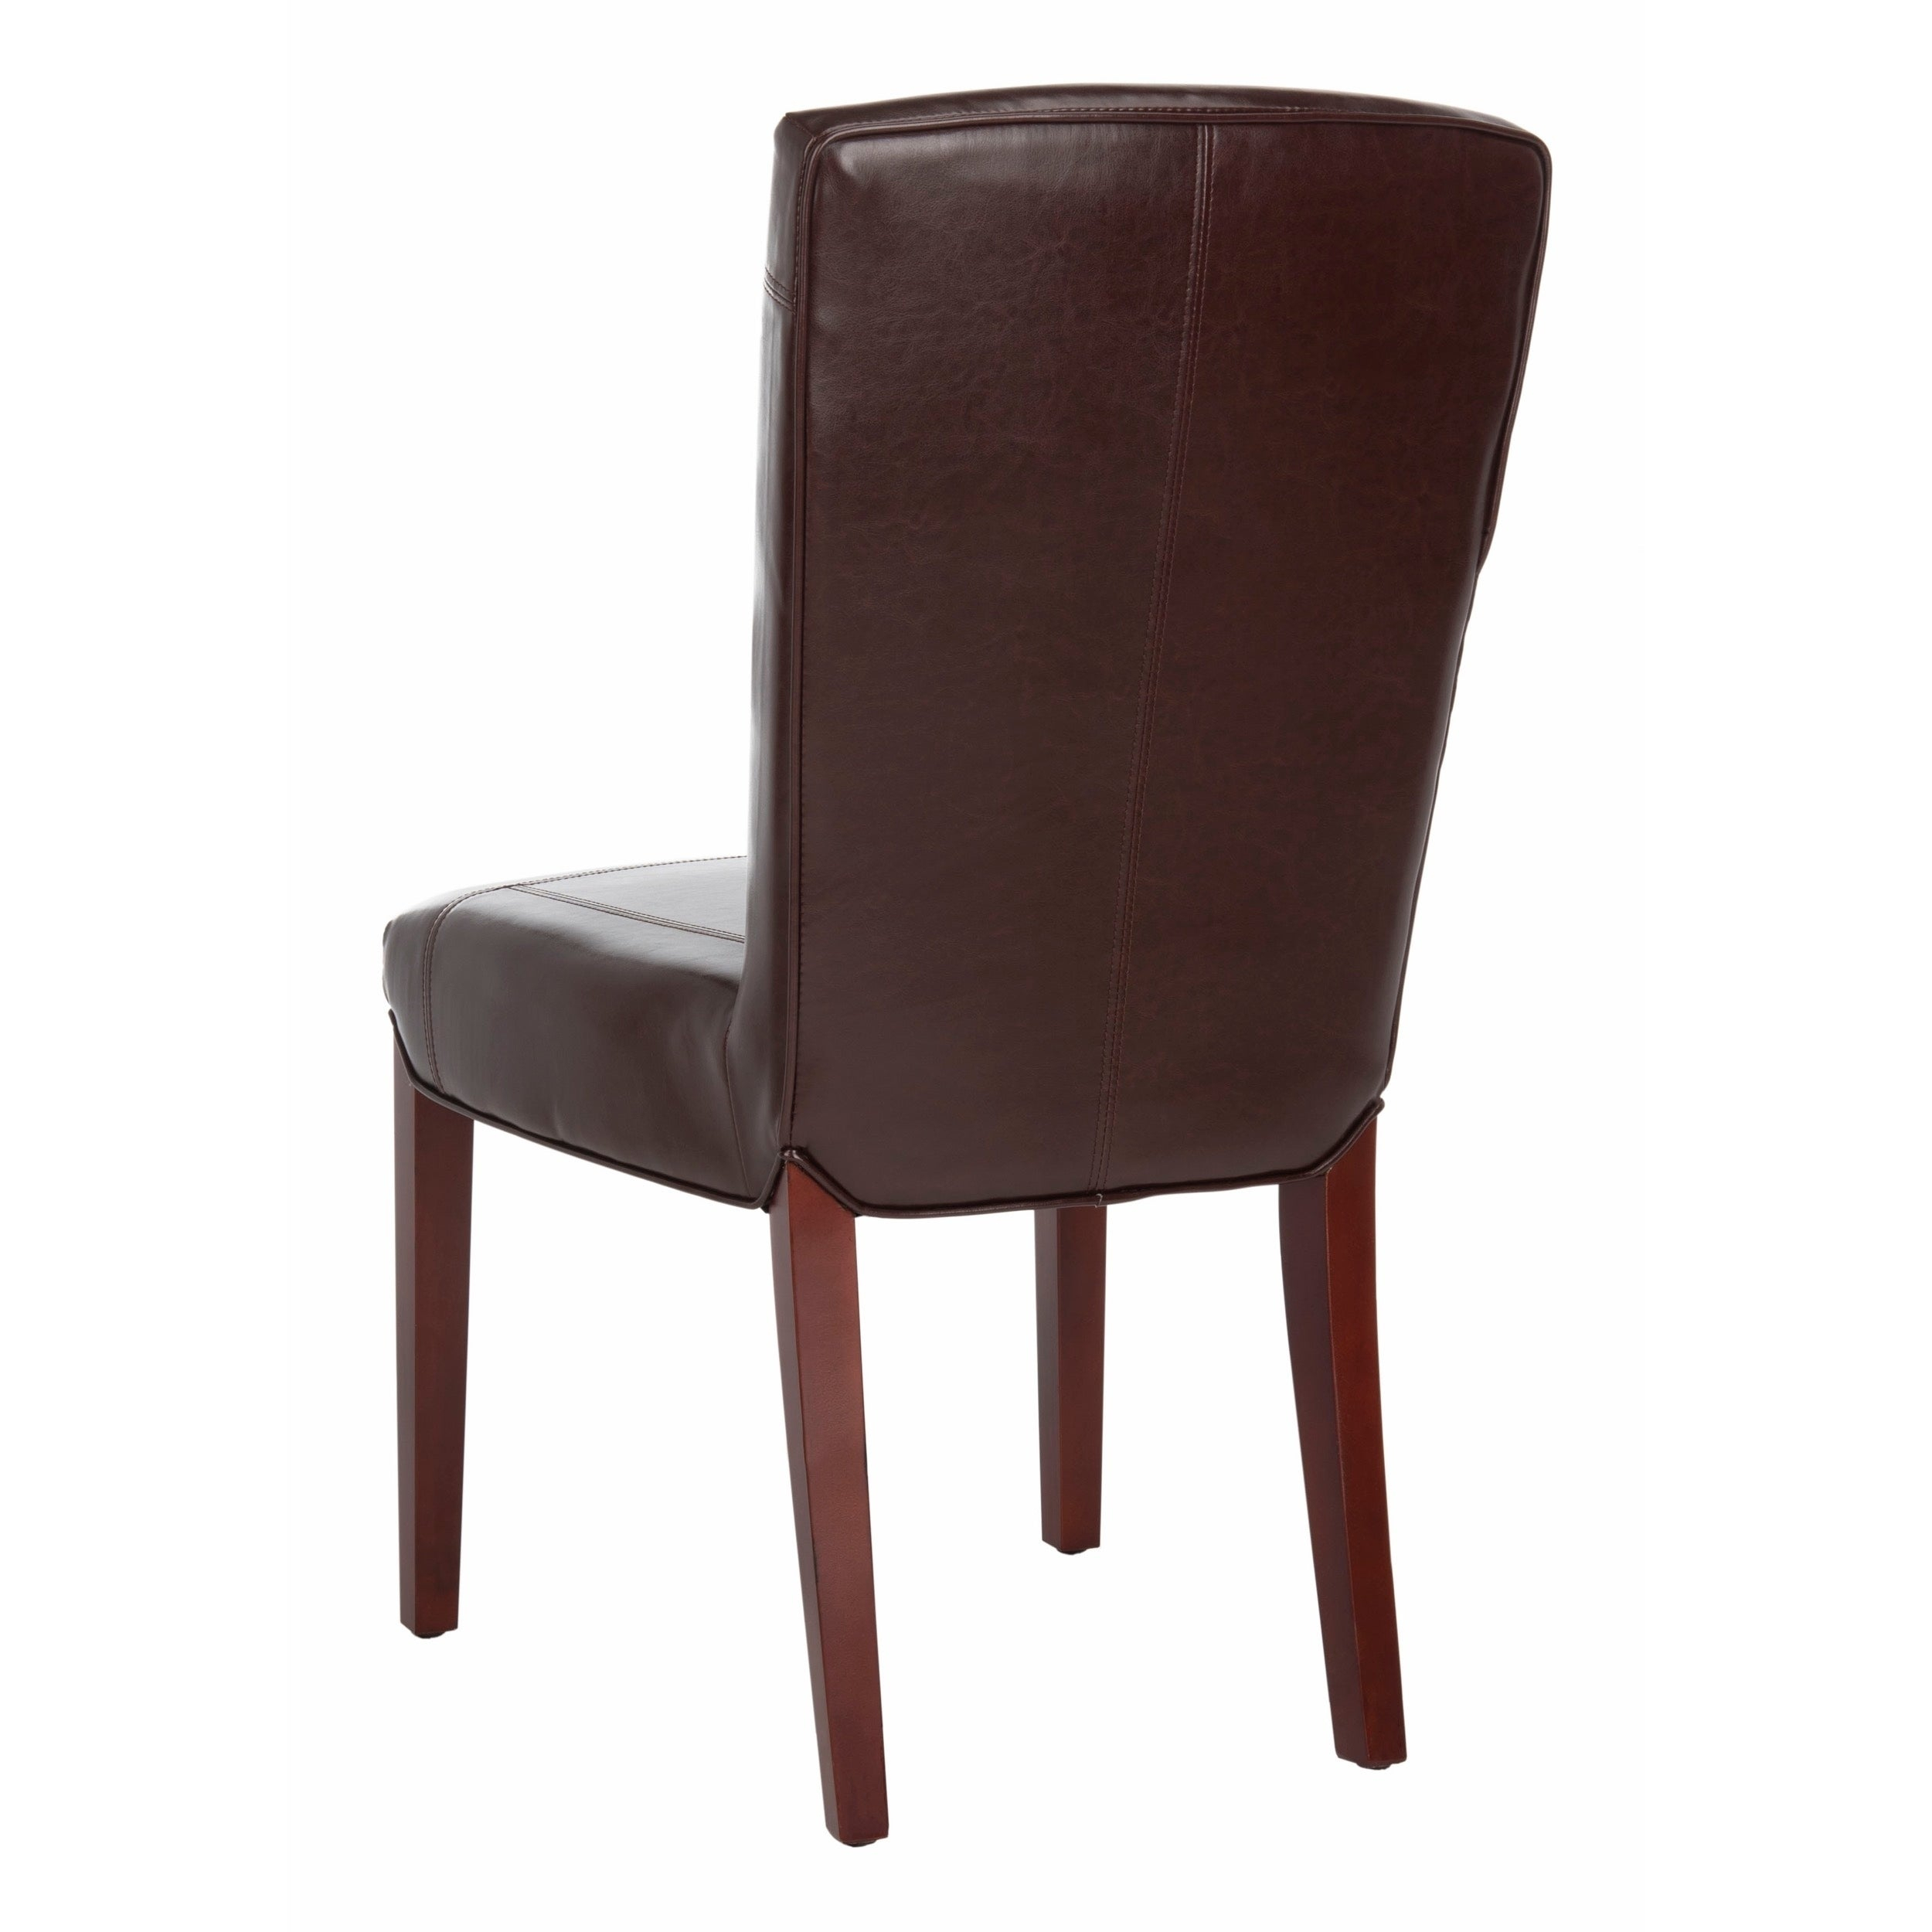 Safavieh Dining Parsons Bowery Brown Marbled Leather Dining Chairs (Set Of 2) Pertaining To Newest Bowry Reclaimed Wood Dining Tables (View 16 of 25)